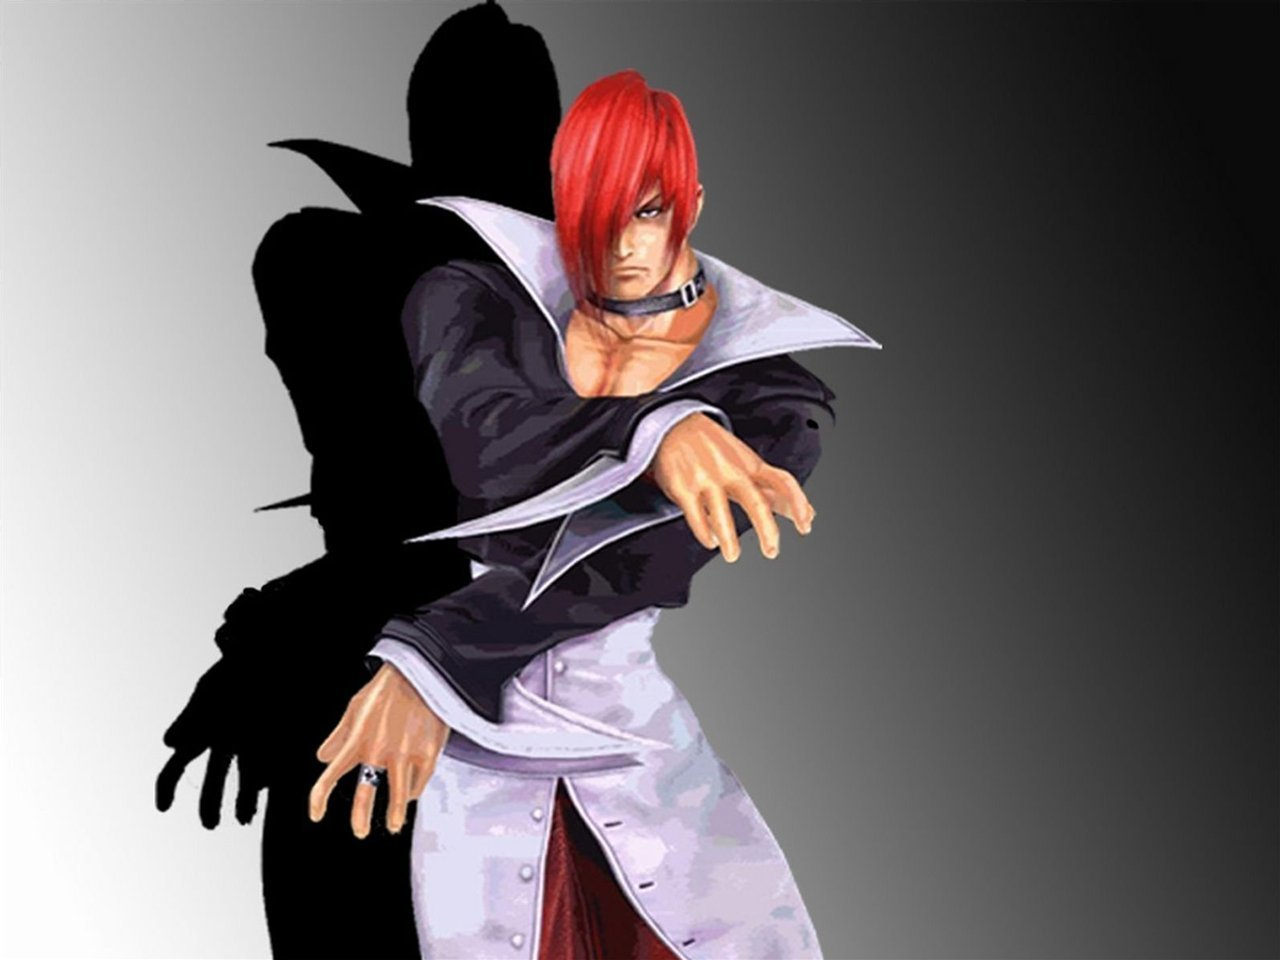 KOF - iori - The King of Fighters Wallpaper (13368607) - Fanpop ...